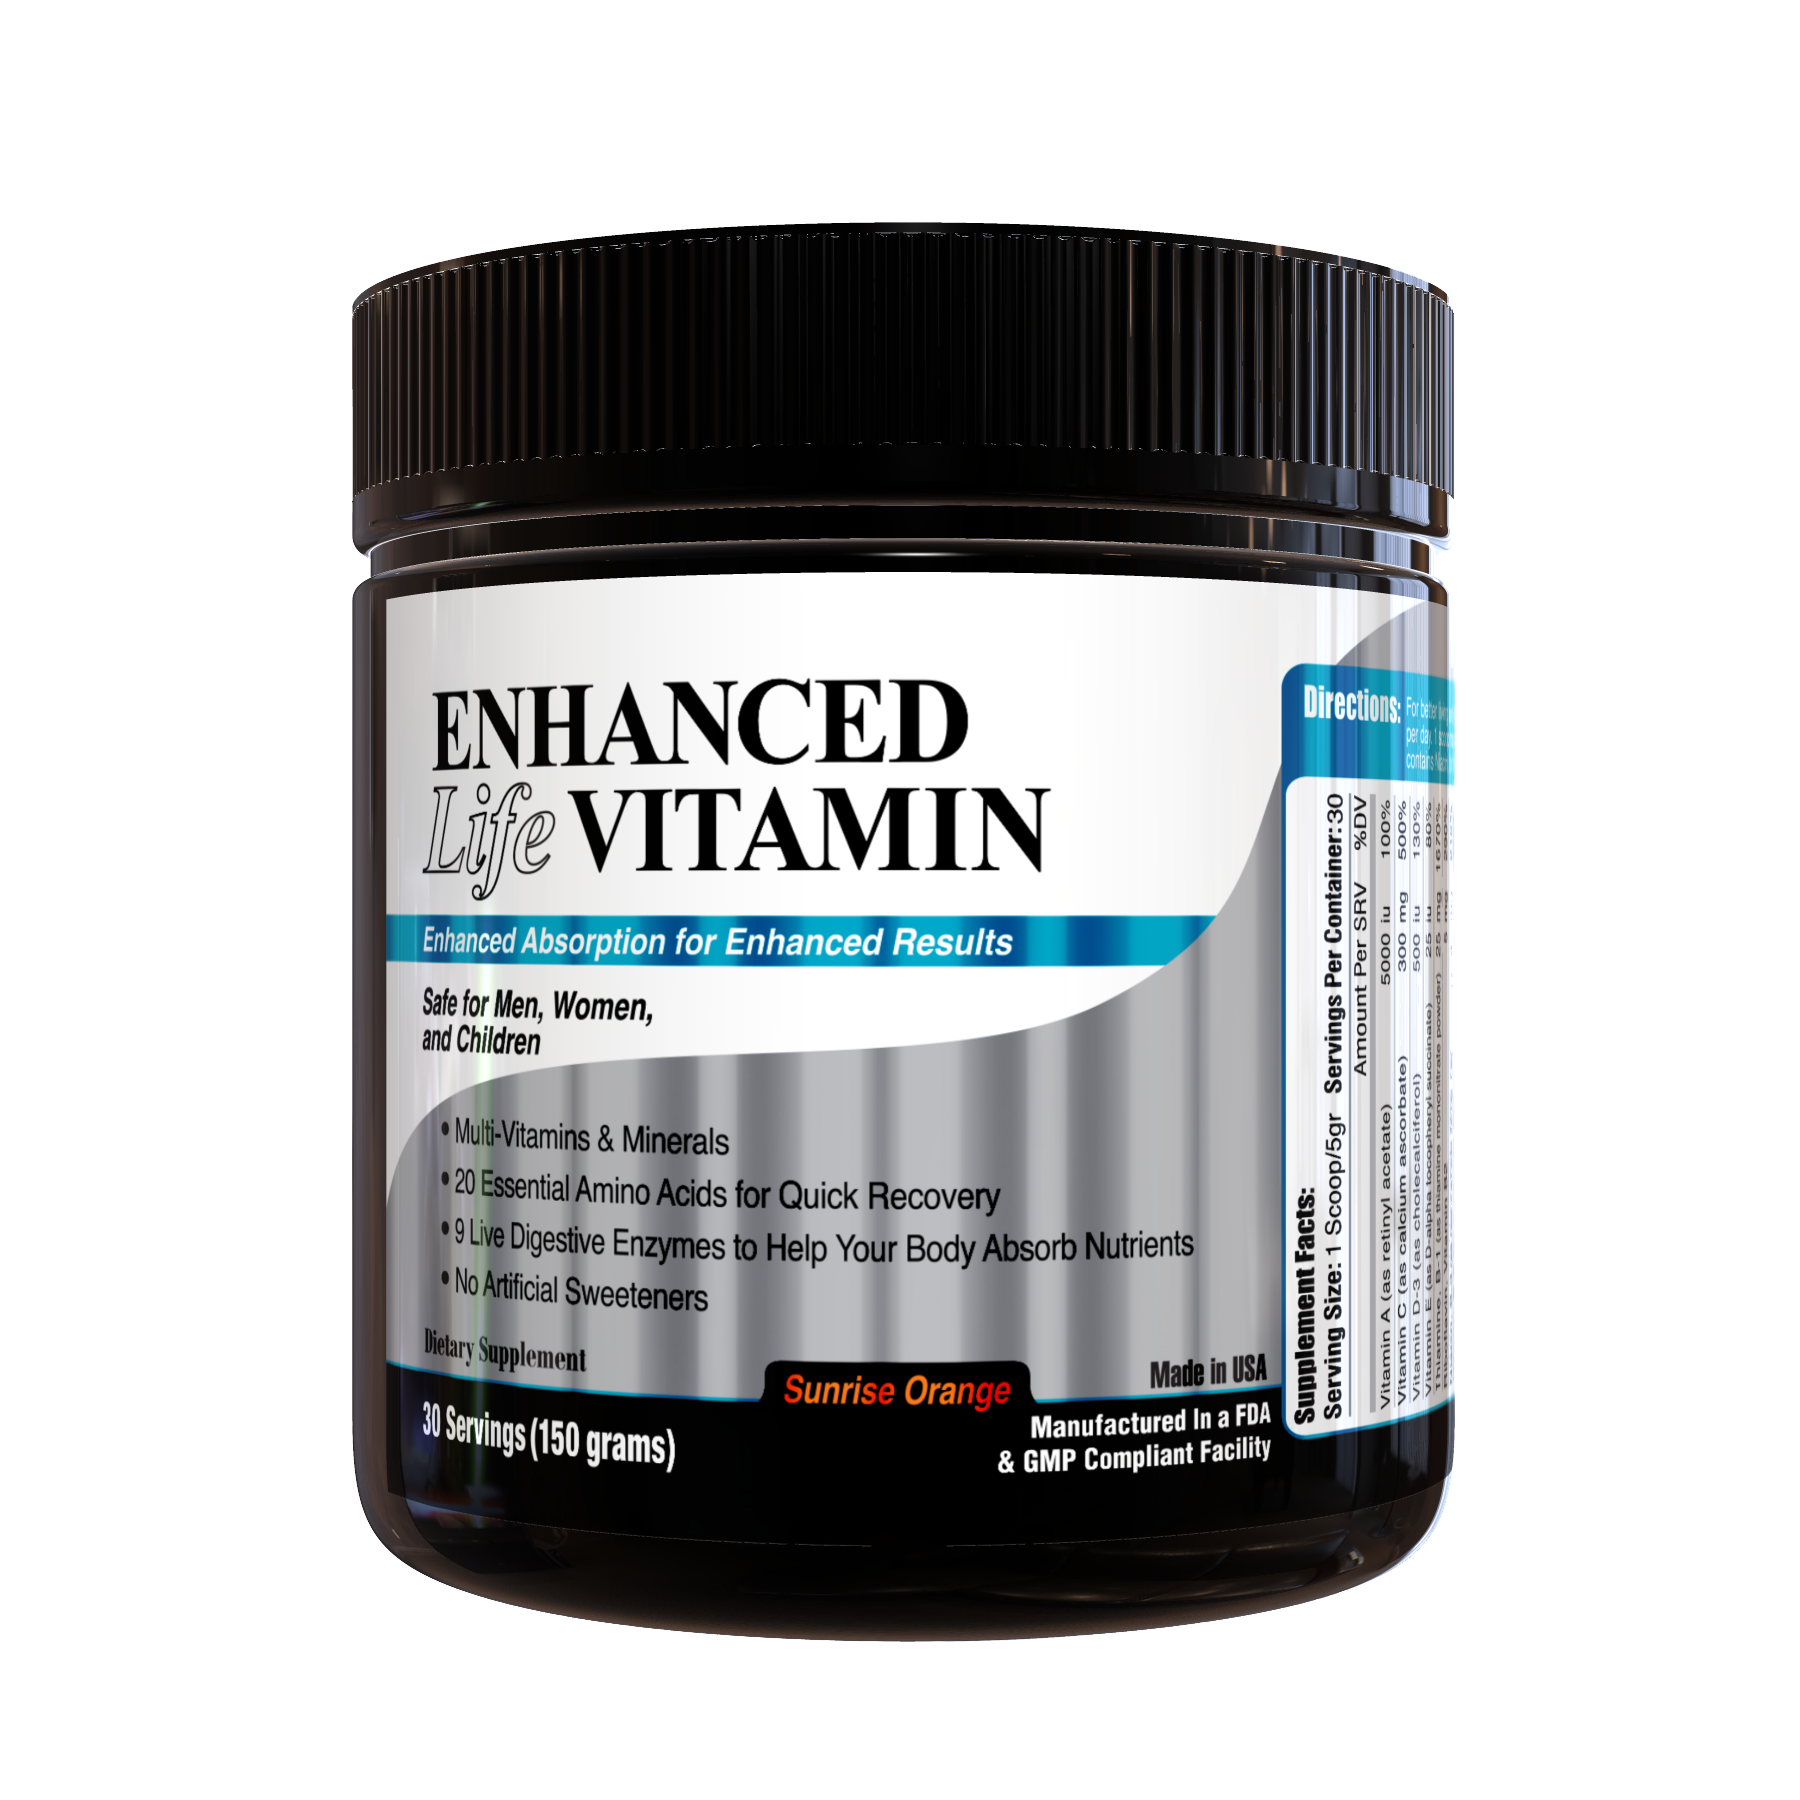 Enhanced Life Vitamin (Sunrise Orange)